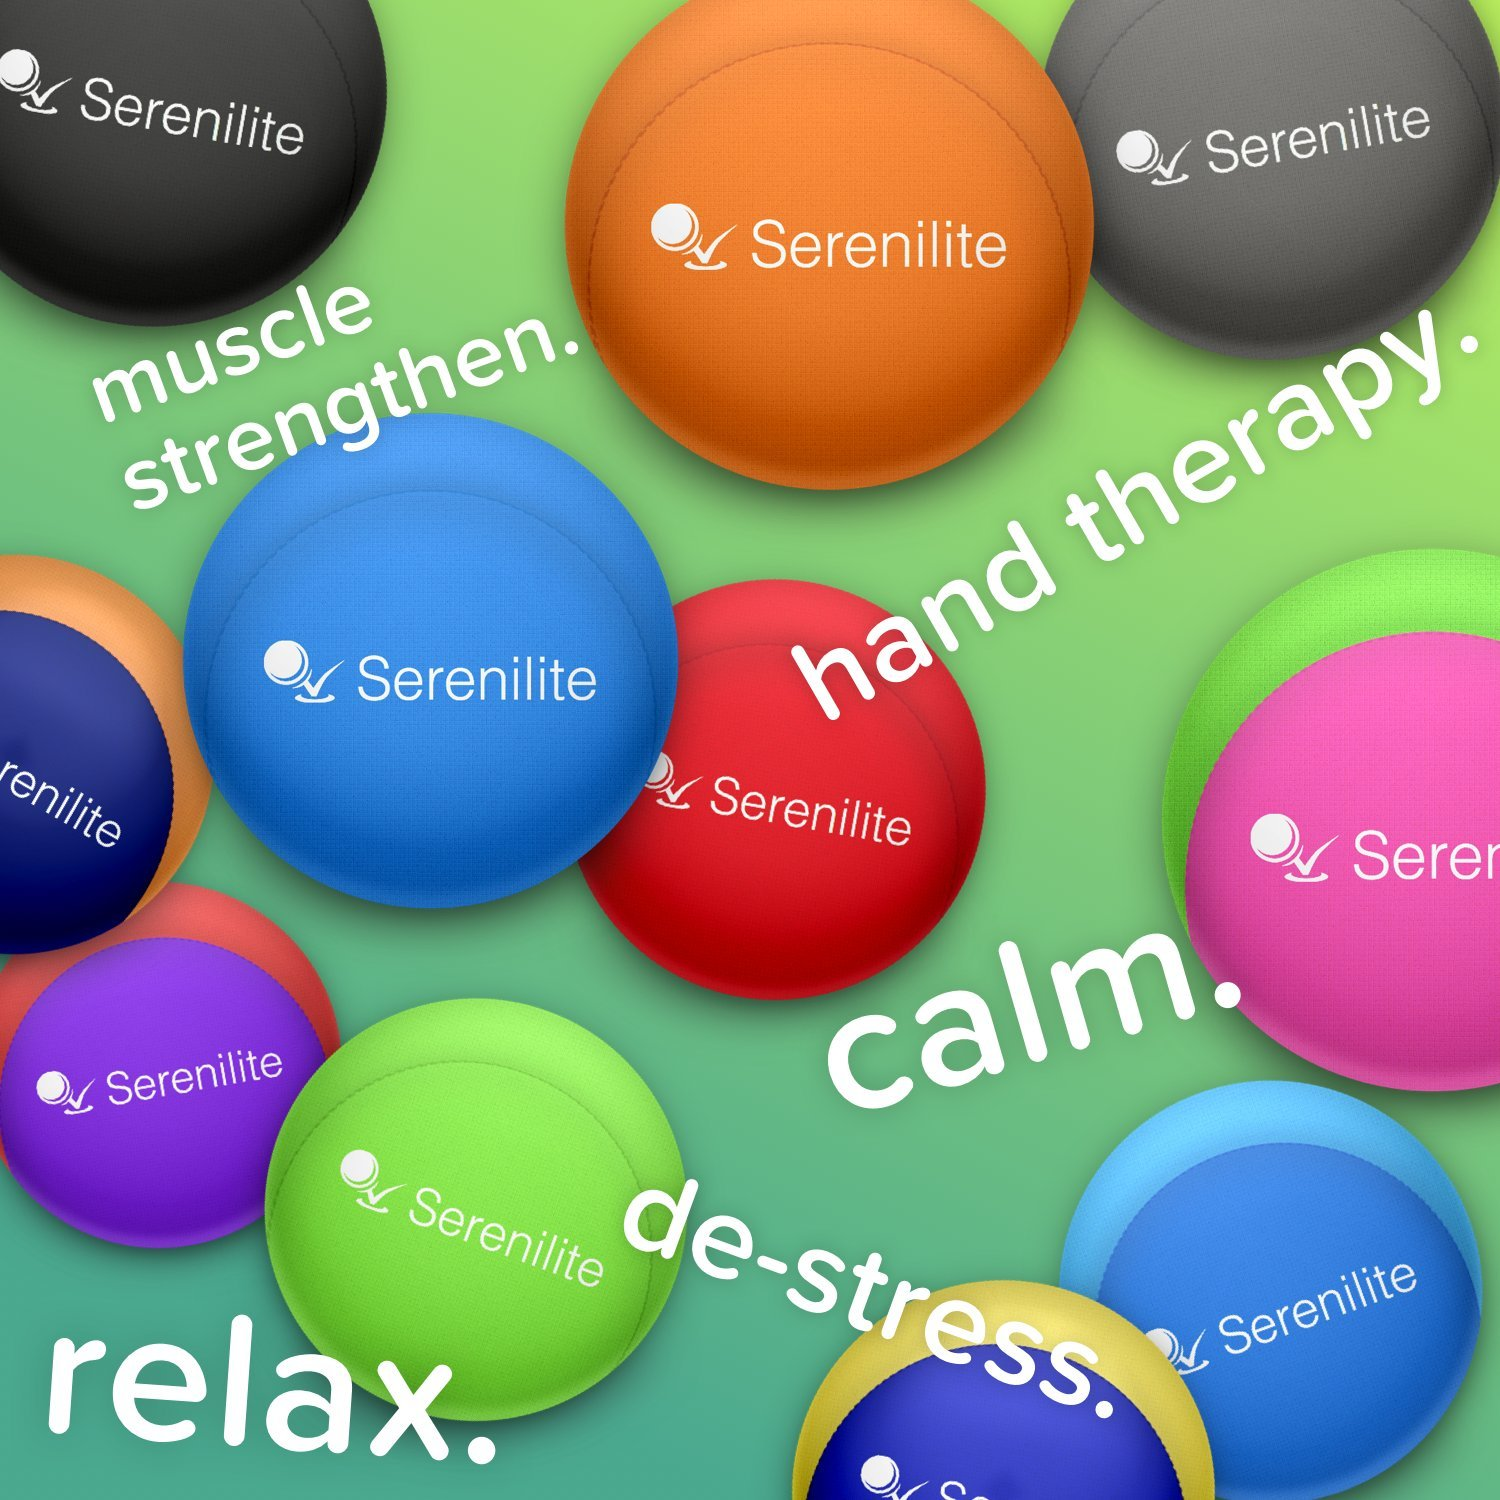 Serenilite Stress Ball & Hand Therapy Gel Squeeze Ball - Great for Hand Exercises and Strengthening - Optimal Stress Relief - Dual Color (Ocean Breeze) by Serenilite (Image #5)